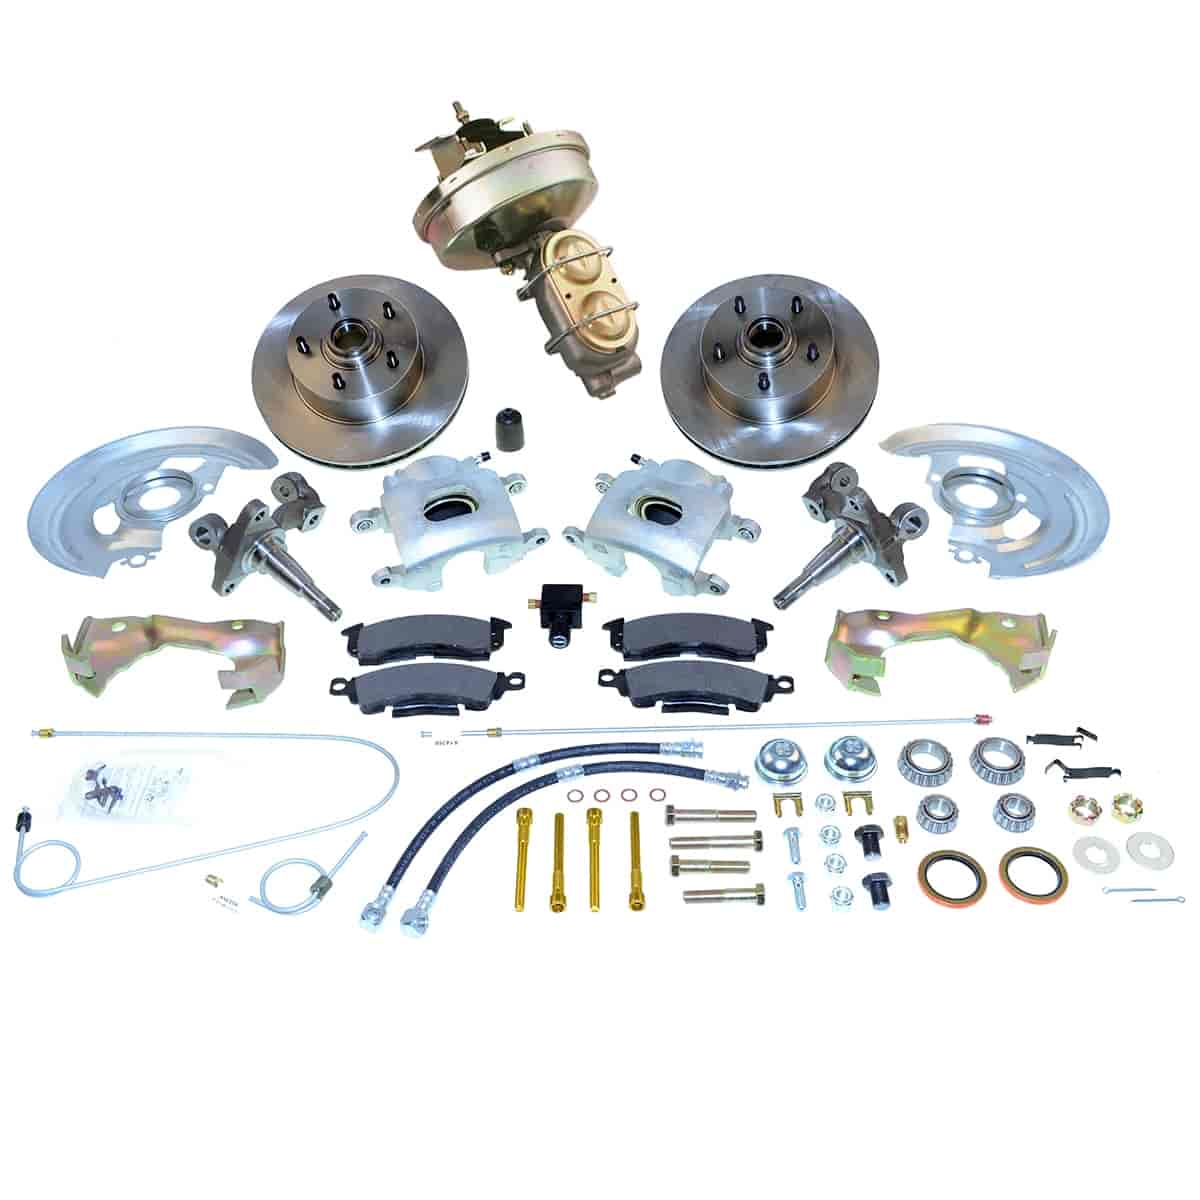 SSBC A123-1 - Stainless Steel Brakes Single Piston Front Drum-to-Disc Brake Conversion Kit